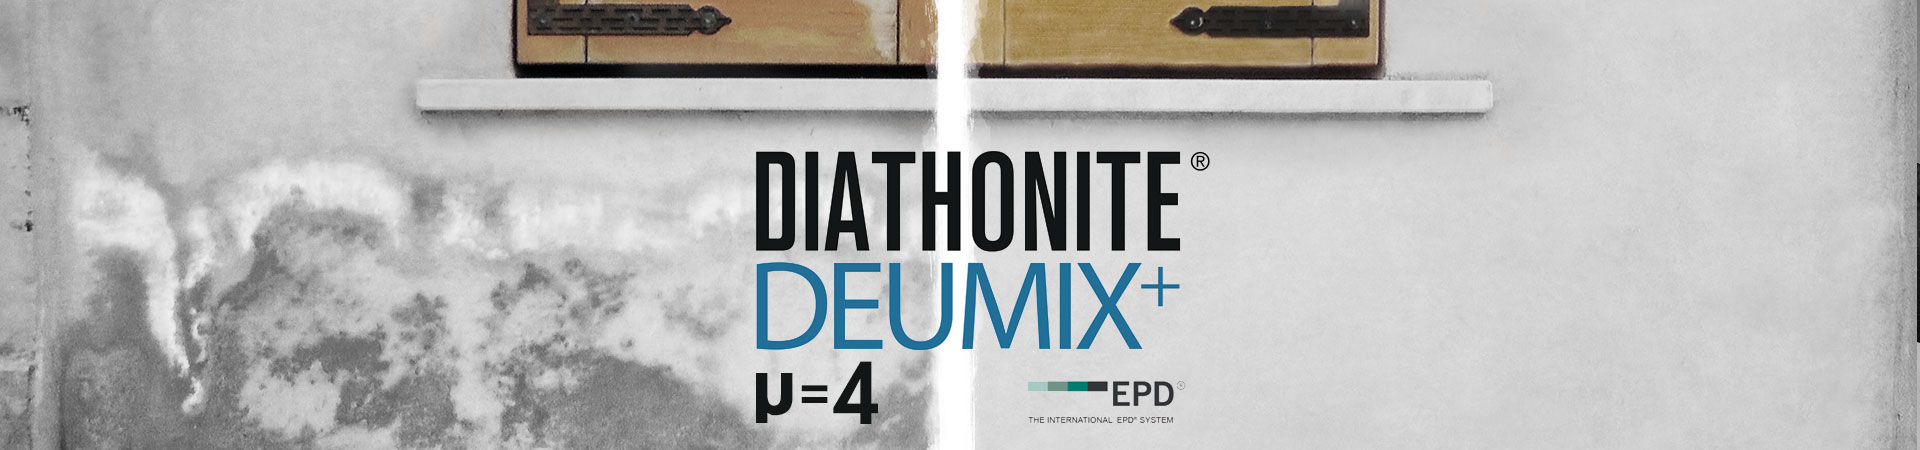 diathonite deumixplus